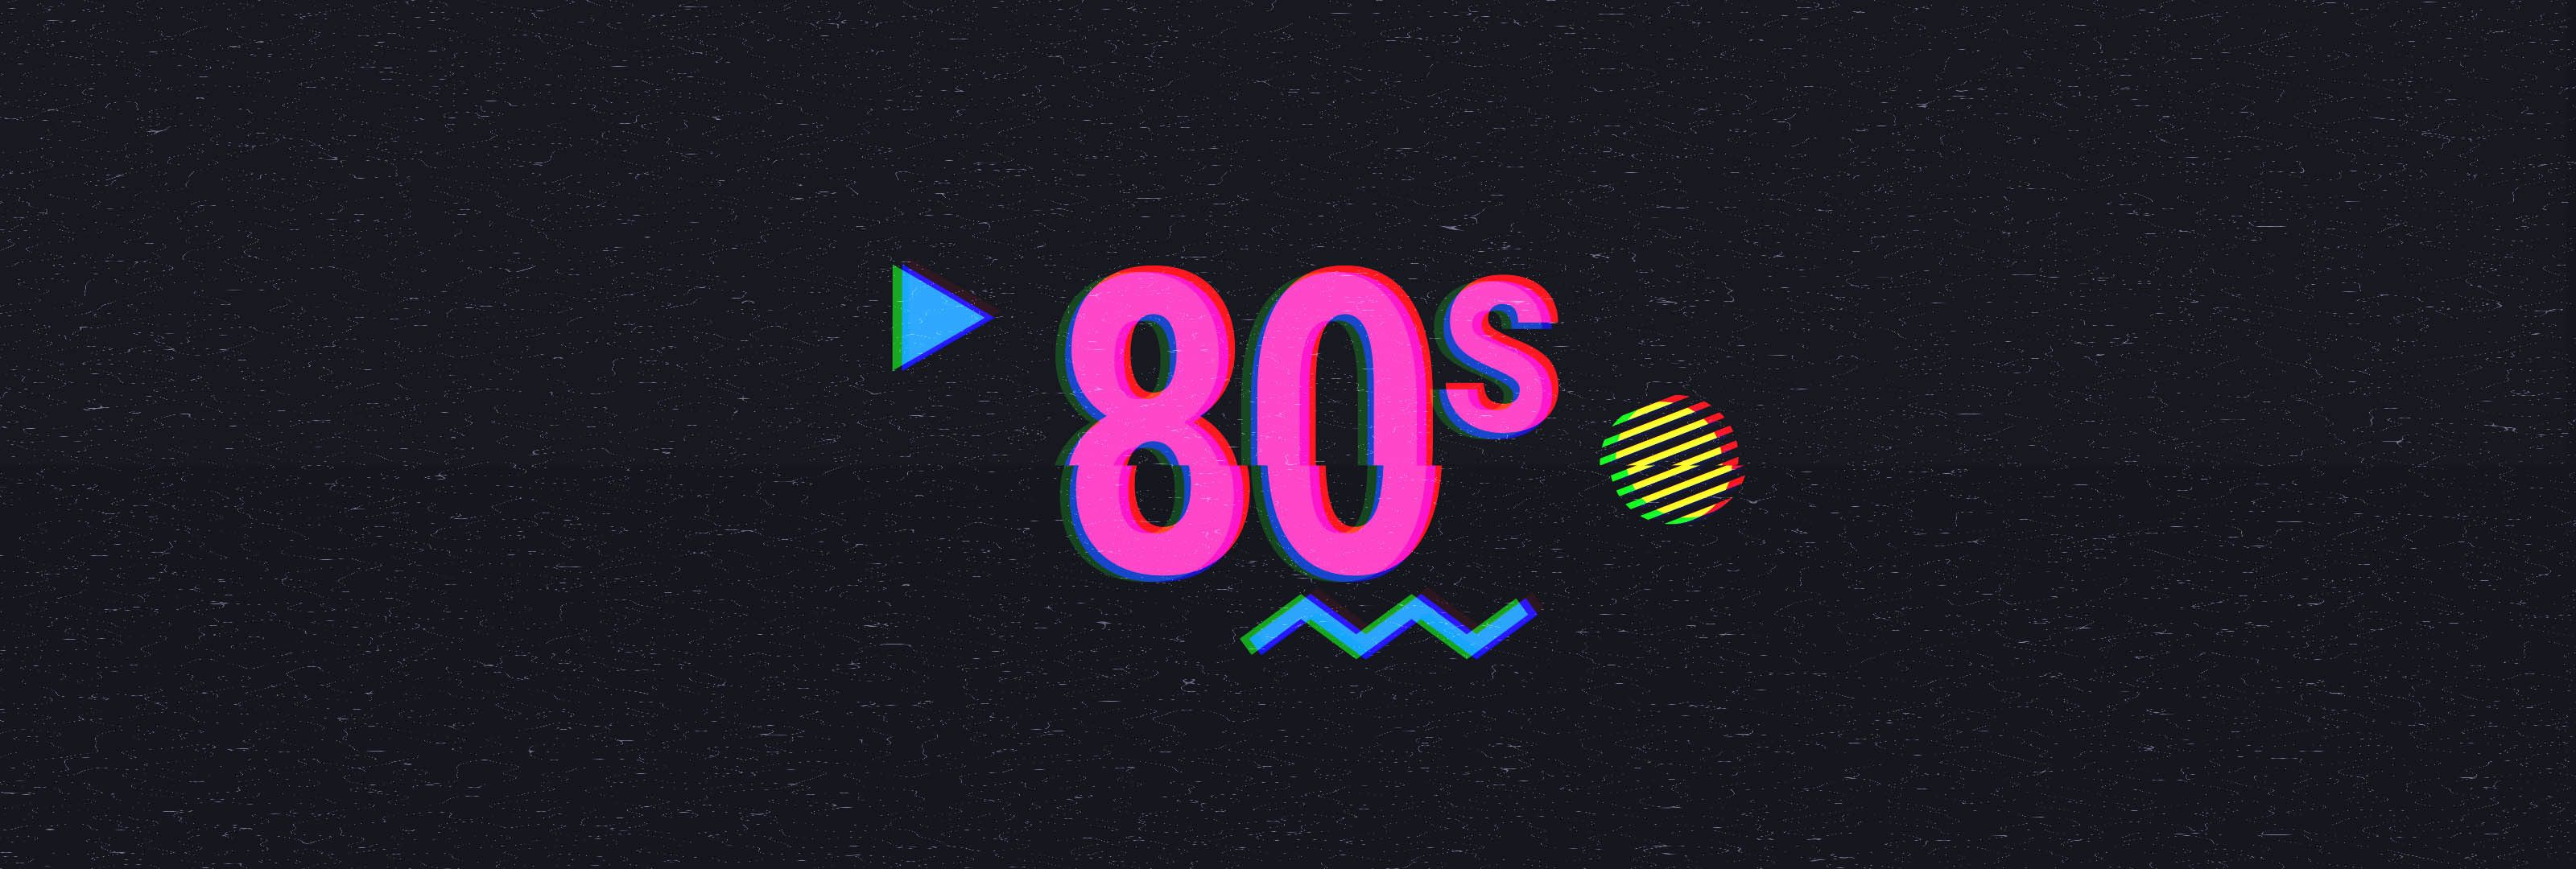 How To Get A Vintage 80s Look In Premiere Pro | New